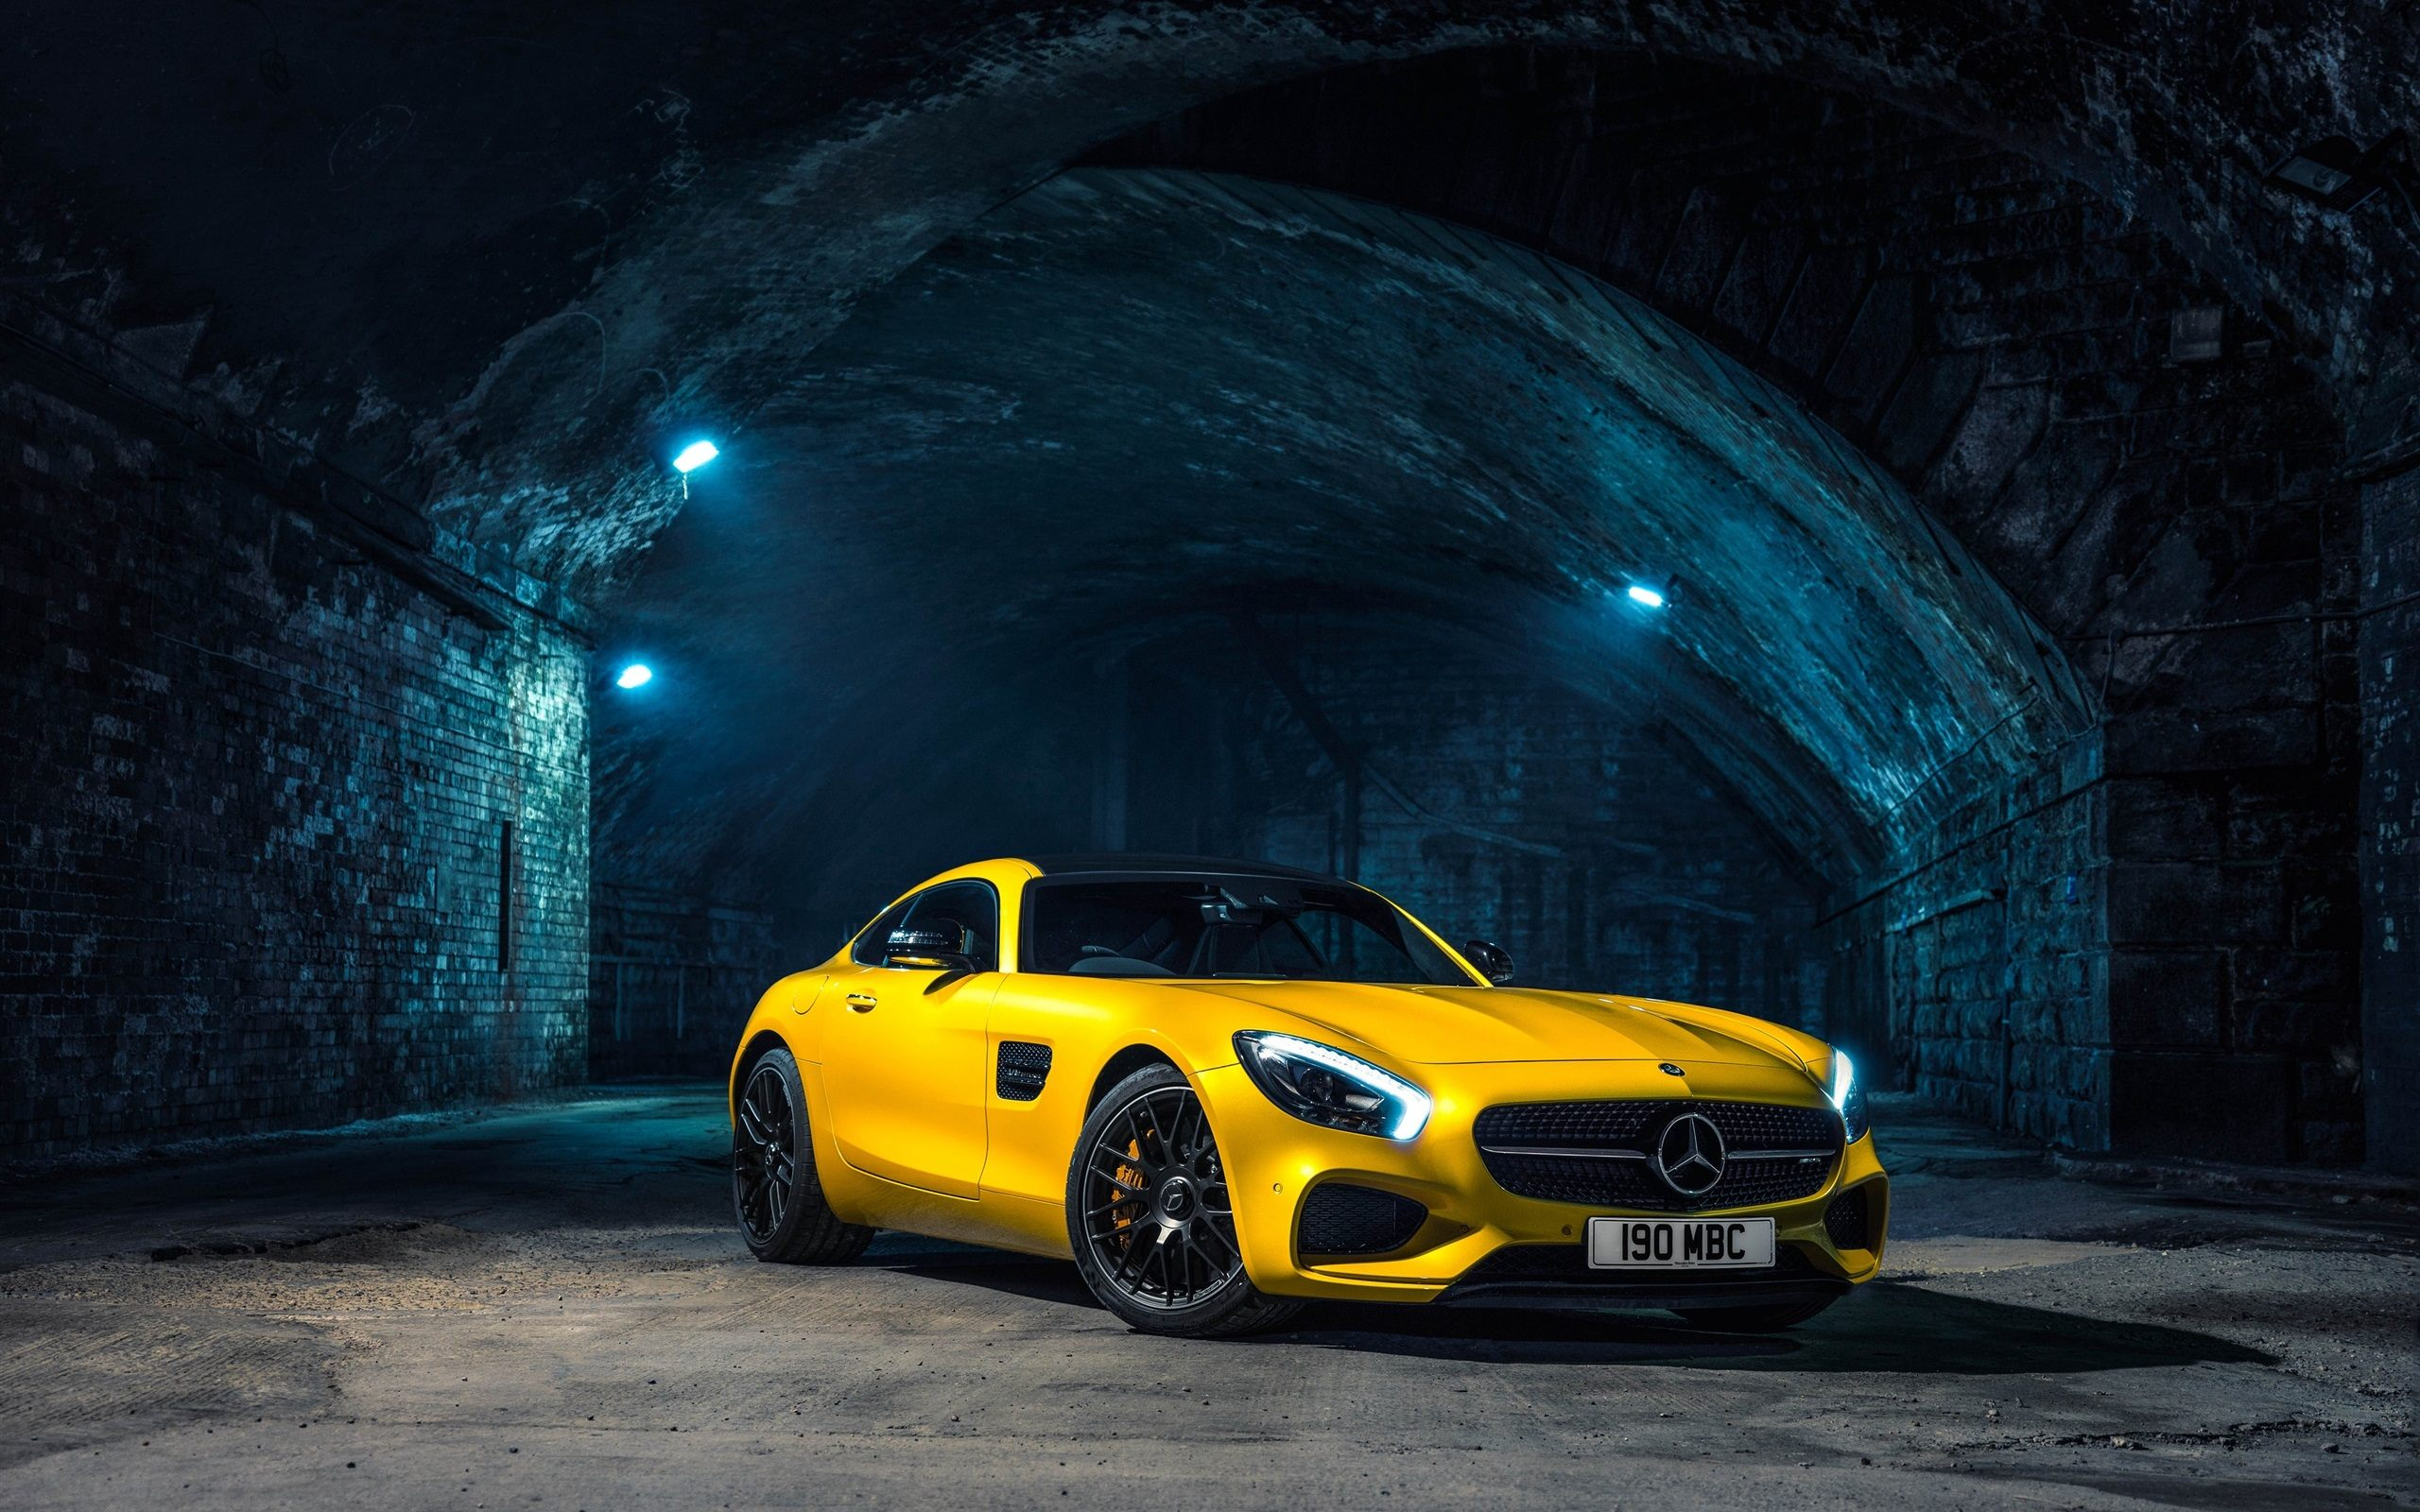 Cars Wallpapers: Download Yellow Car Wallpaper Gallery